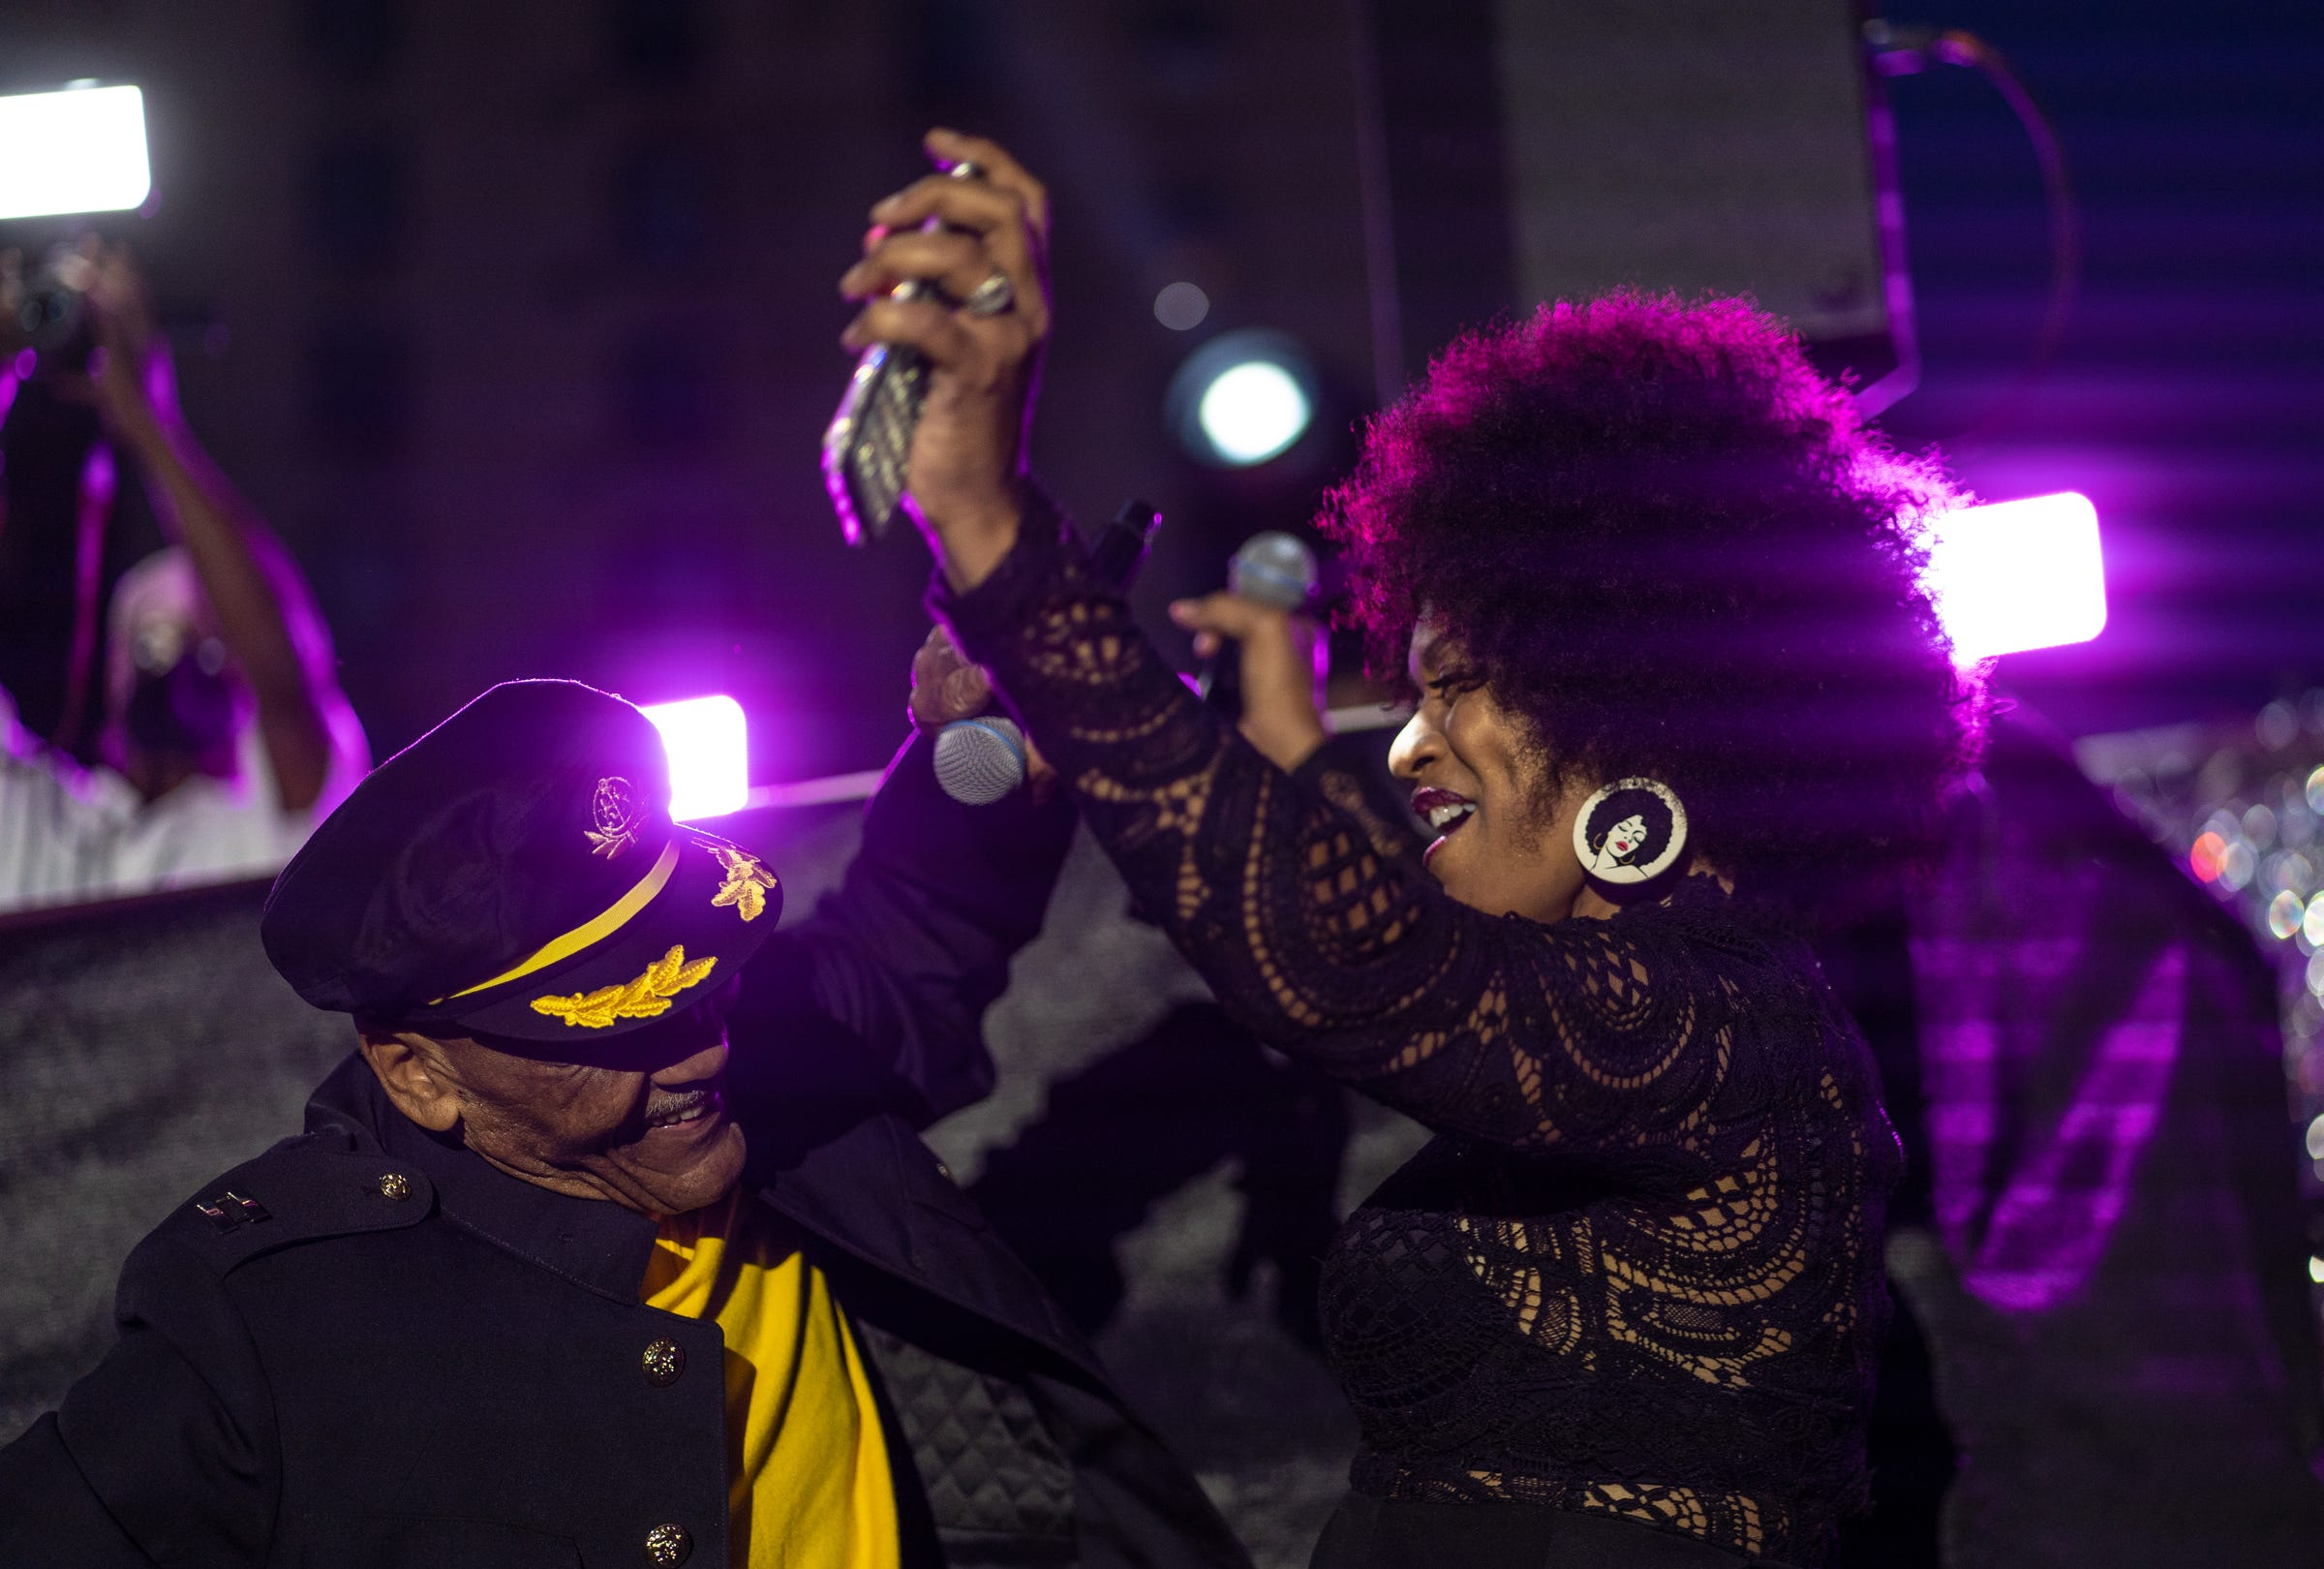 """Nat Morris, executive producer and host of Detroit's historic daily dance show, """"The Scene"""", and LaWanda Gray-Anner dance together on stage while emceeing during """"The Scene with Nat Morris and Friends"""" as part of the DLECTRICITY event at Beacon Park in downtown Detroit on September 24, 2021. The event featured former dancers from Detroit's historic daily dance show that aired on WGPR TV, the first African-American owned and operated television station licensed by the FCC in The United States from 1975-1987, taking part in an open dance floor. The Scene looked to attempt Detroit's longest dance line giving each dancer 30 seconds to keep it moving."""